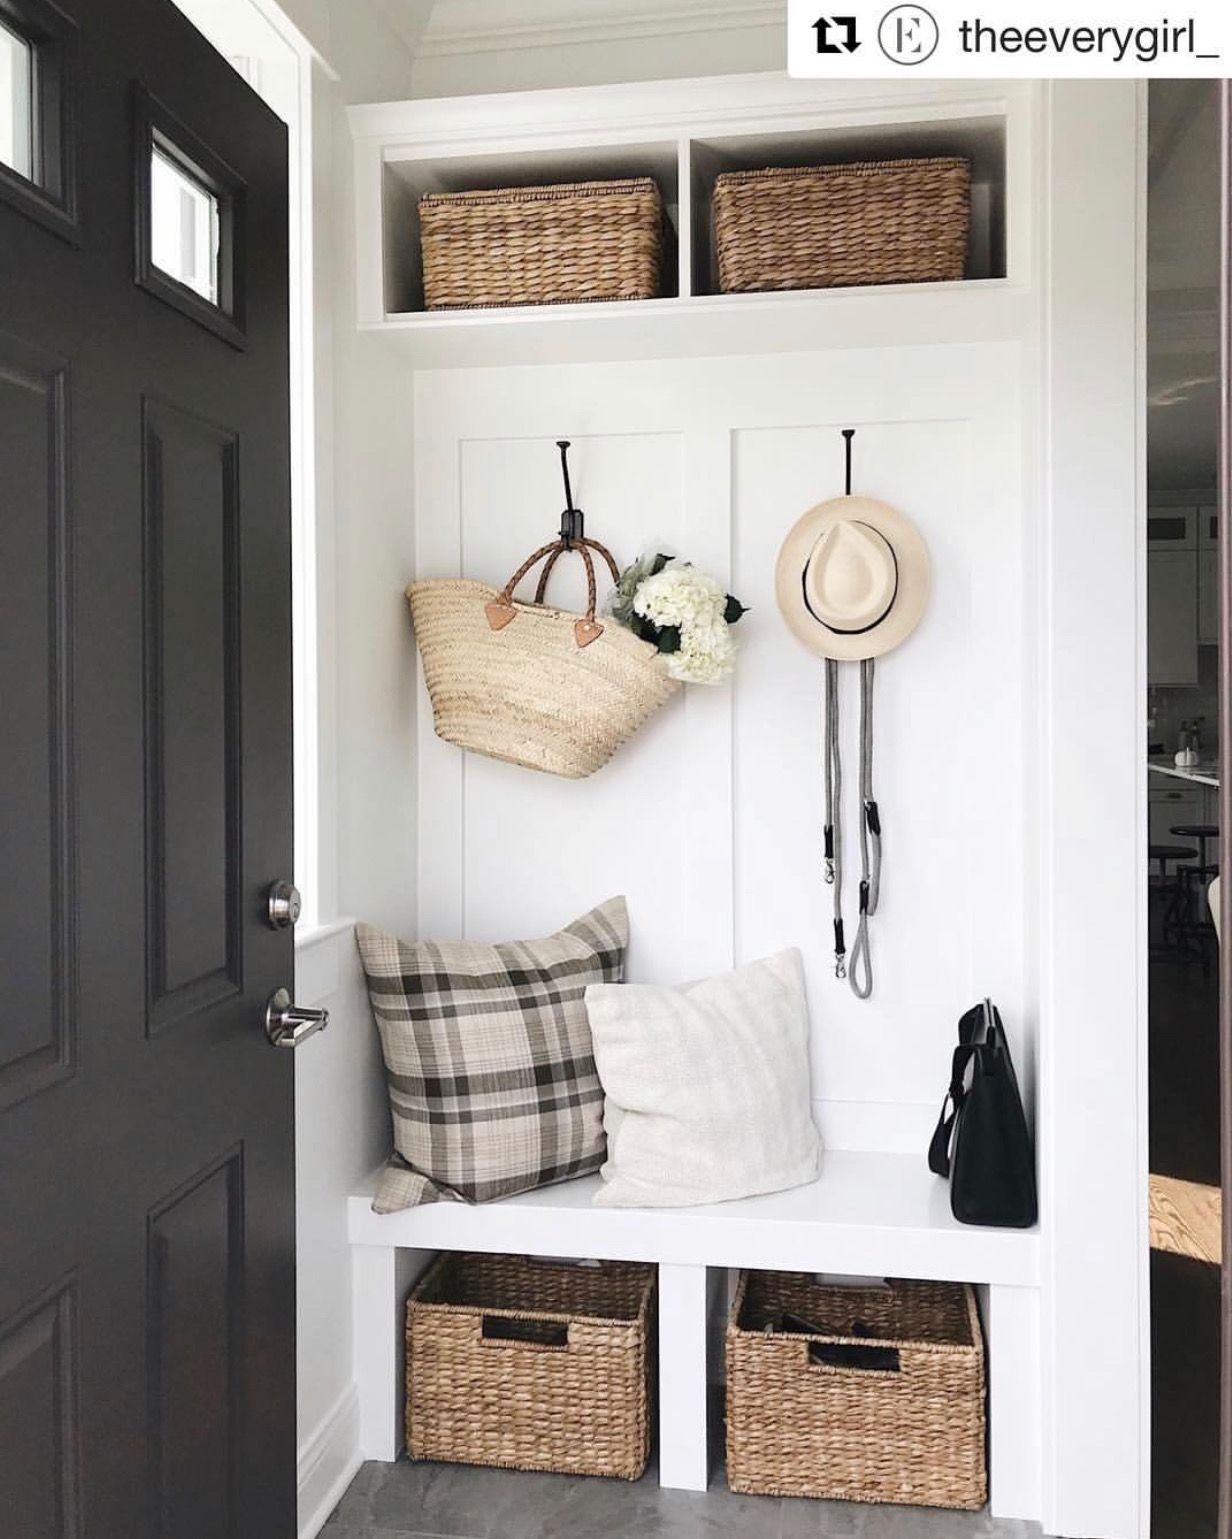 Closet Ideas Mudroom Design: #Entryway. Style And Function. #organize